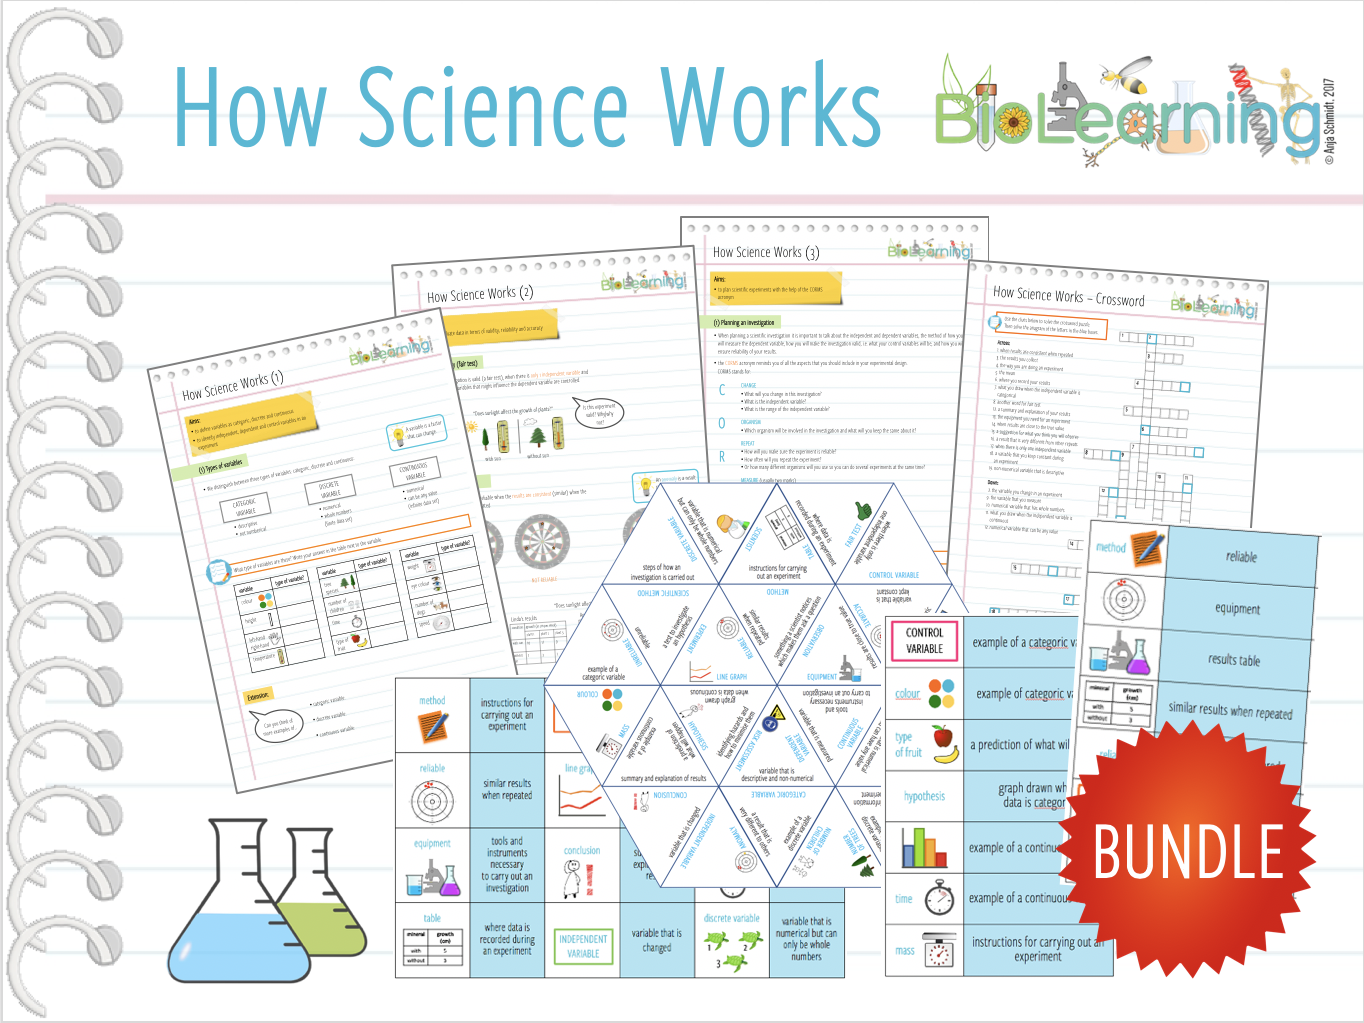 How Science Works (HSW) - 8x Worksheets, games and activities